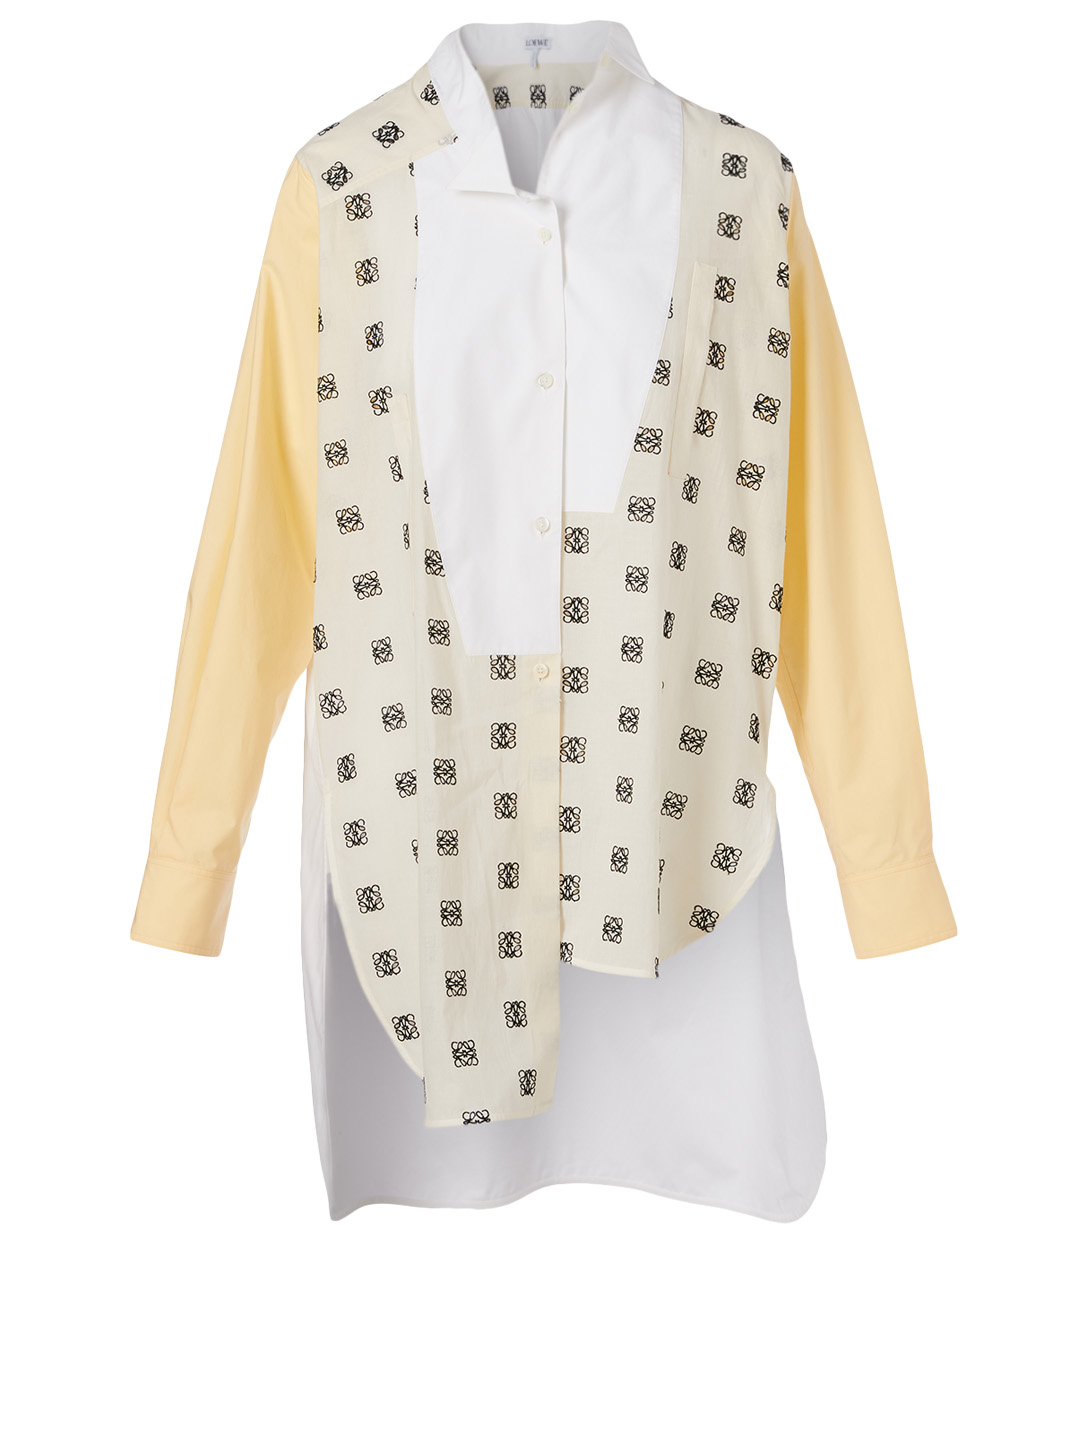 LOEWE Cotton Asymmetric Shirt In Logo Print Women's Multi